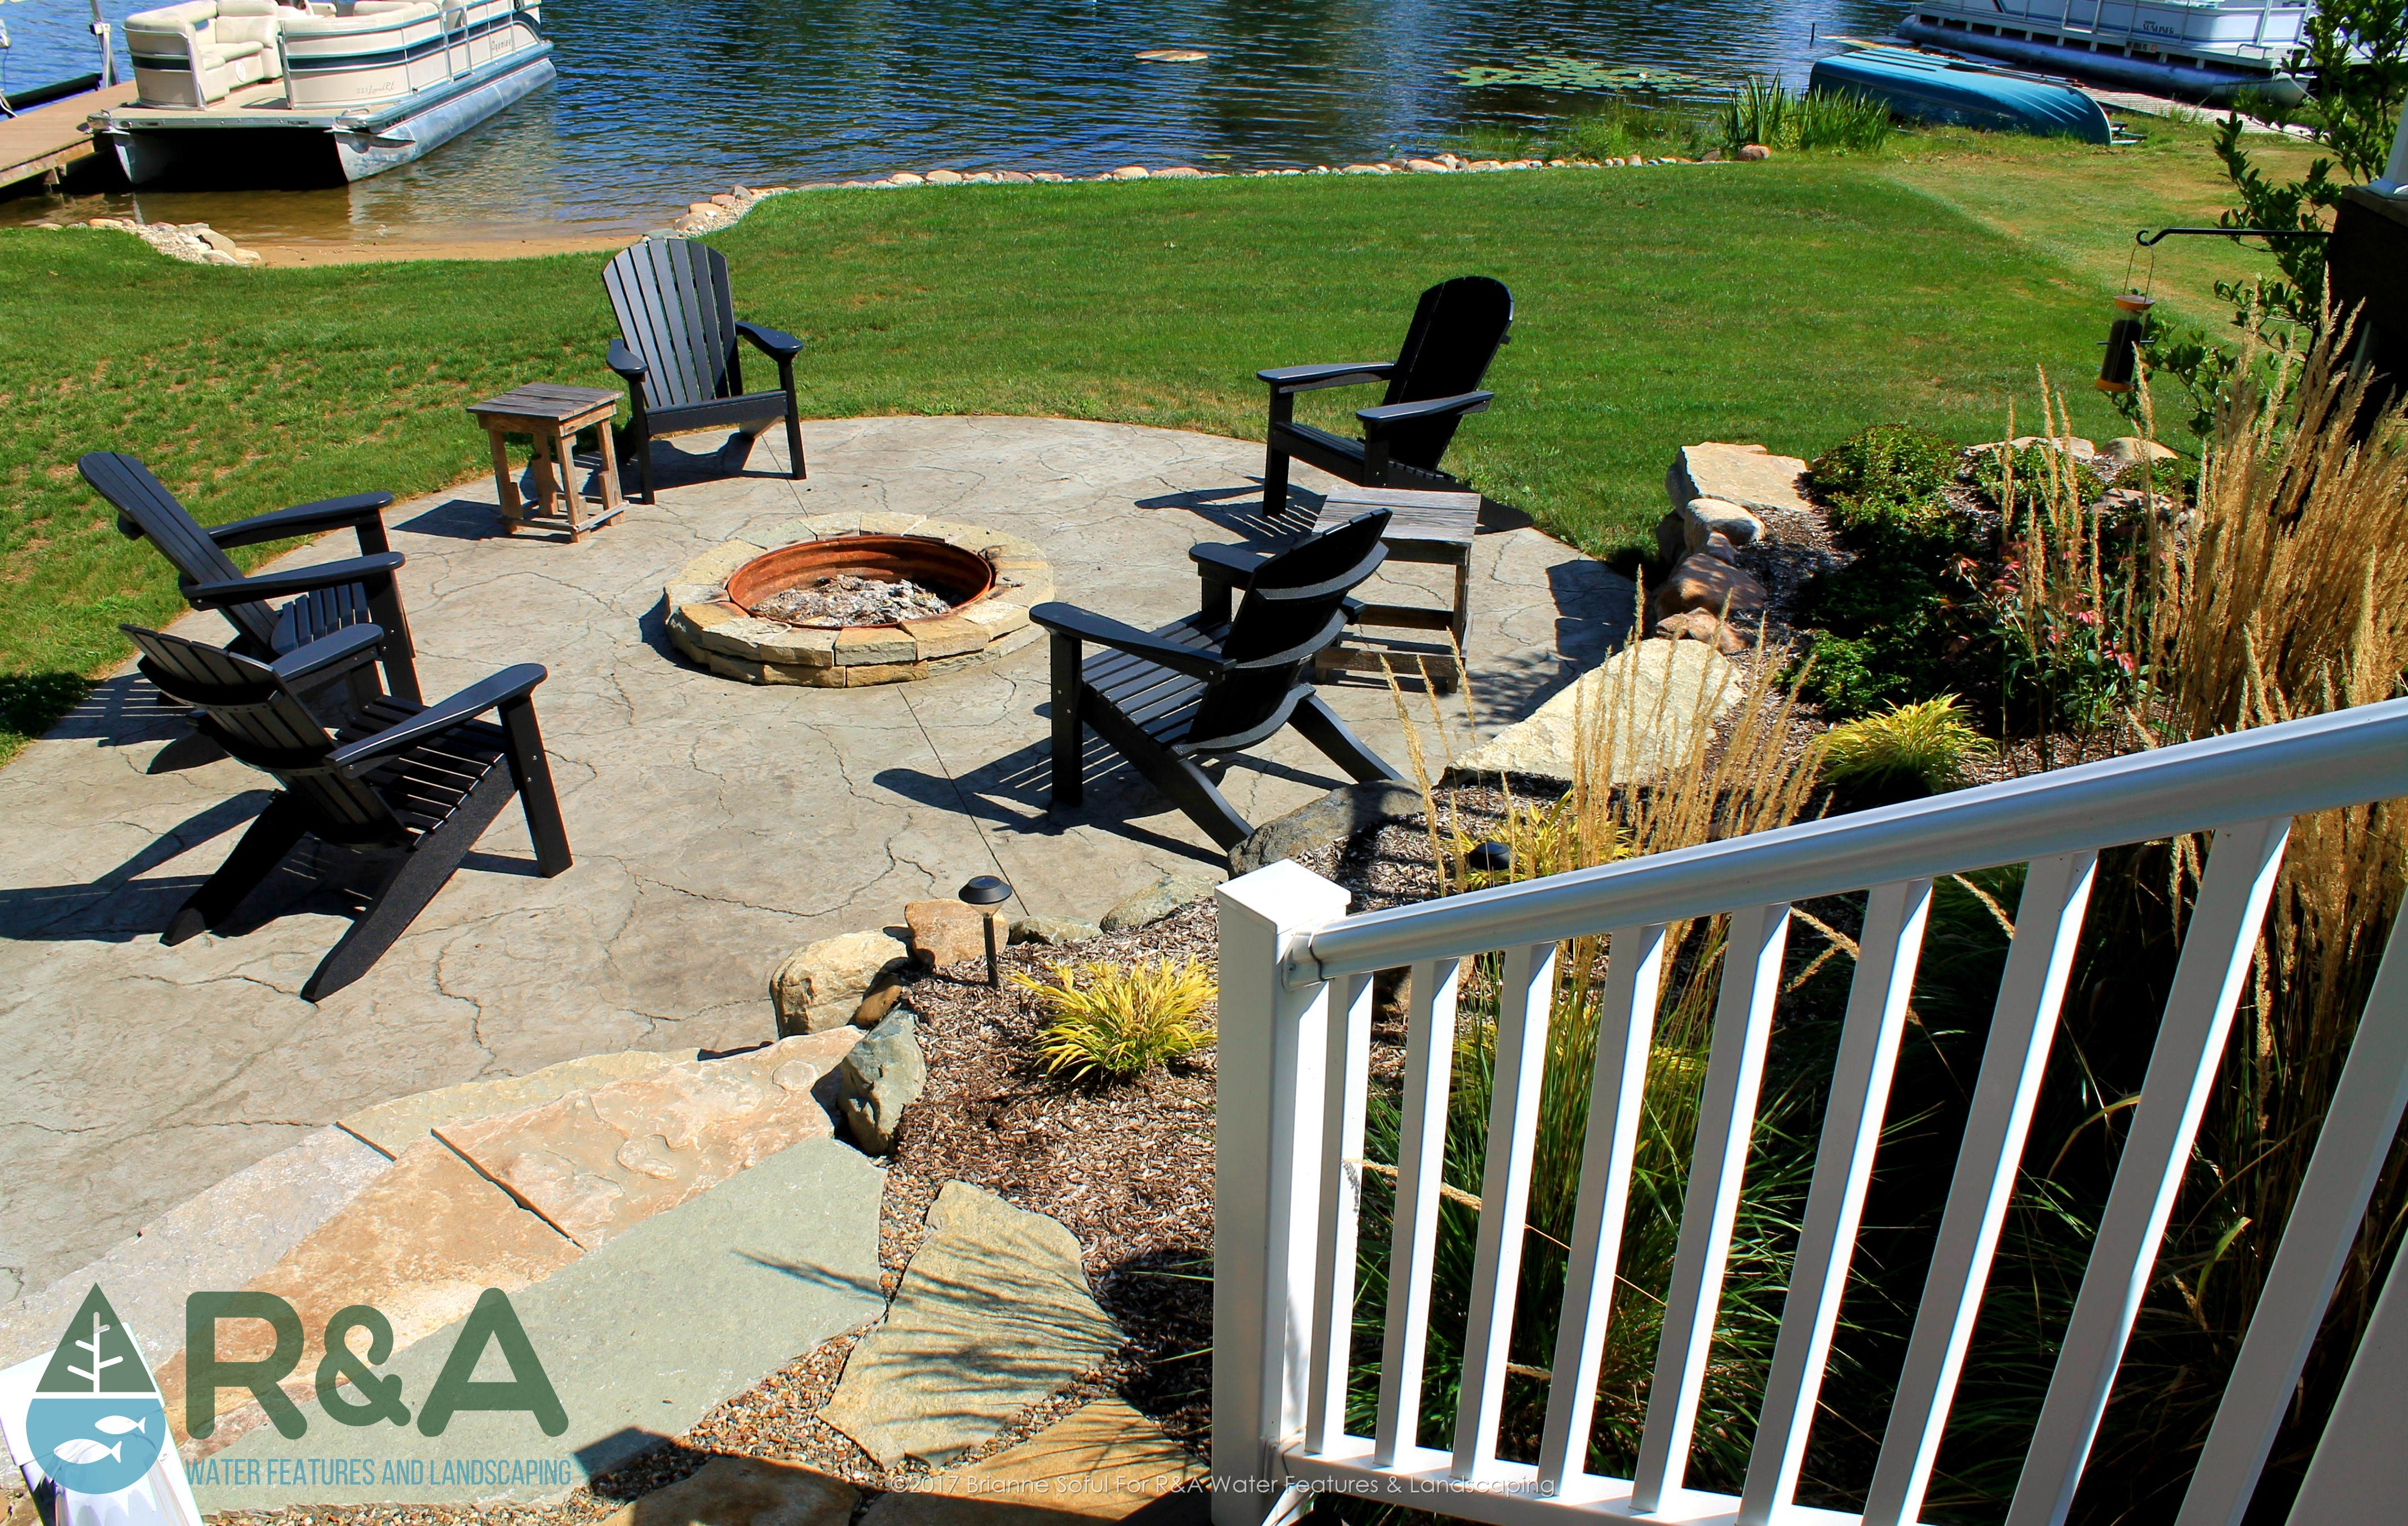 Richland Lakeside Outdoor Living Area With Fire Pit Patio Retaining Wall Deck on Pine Lake